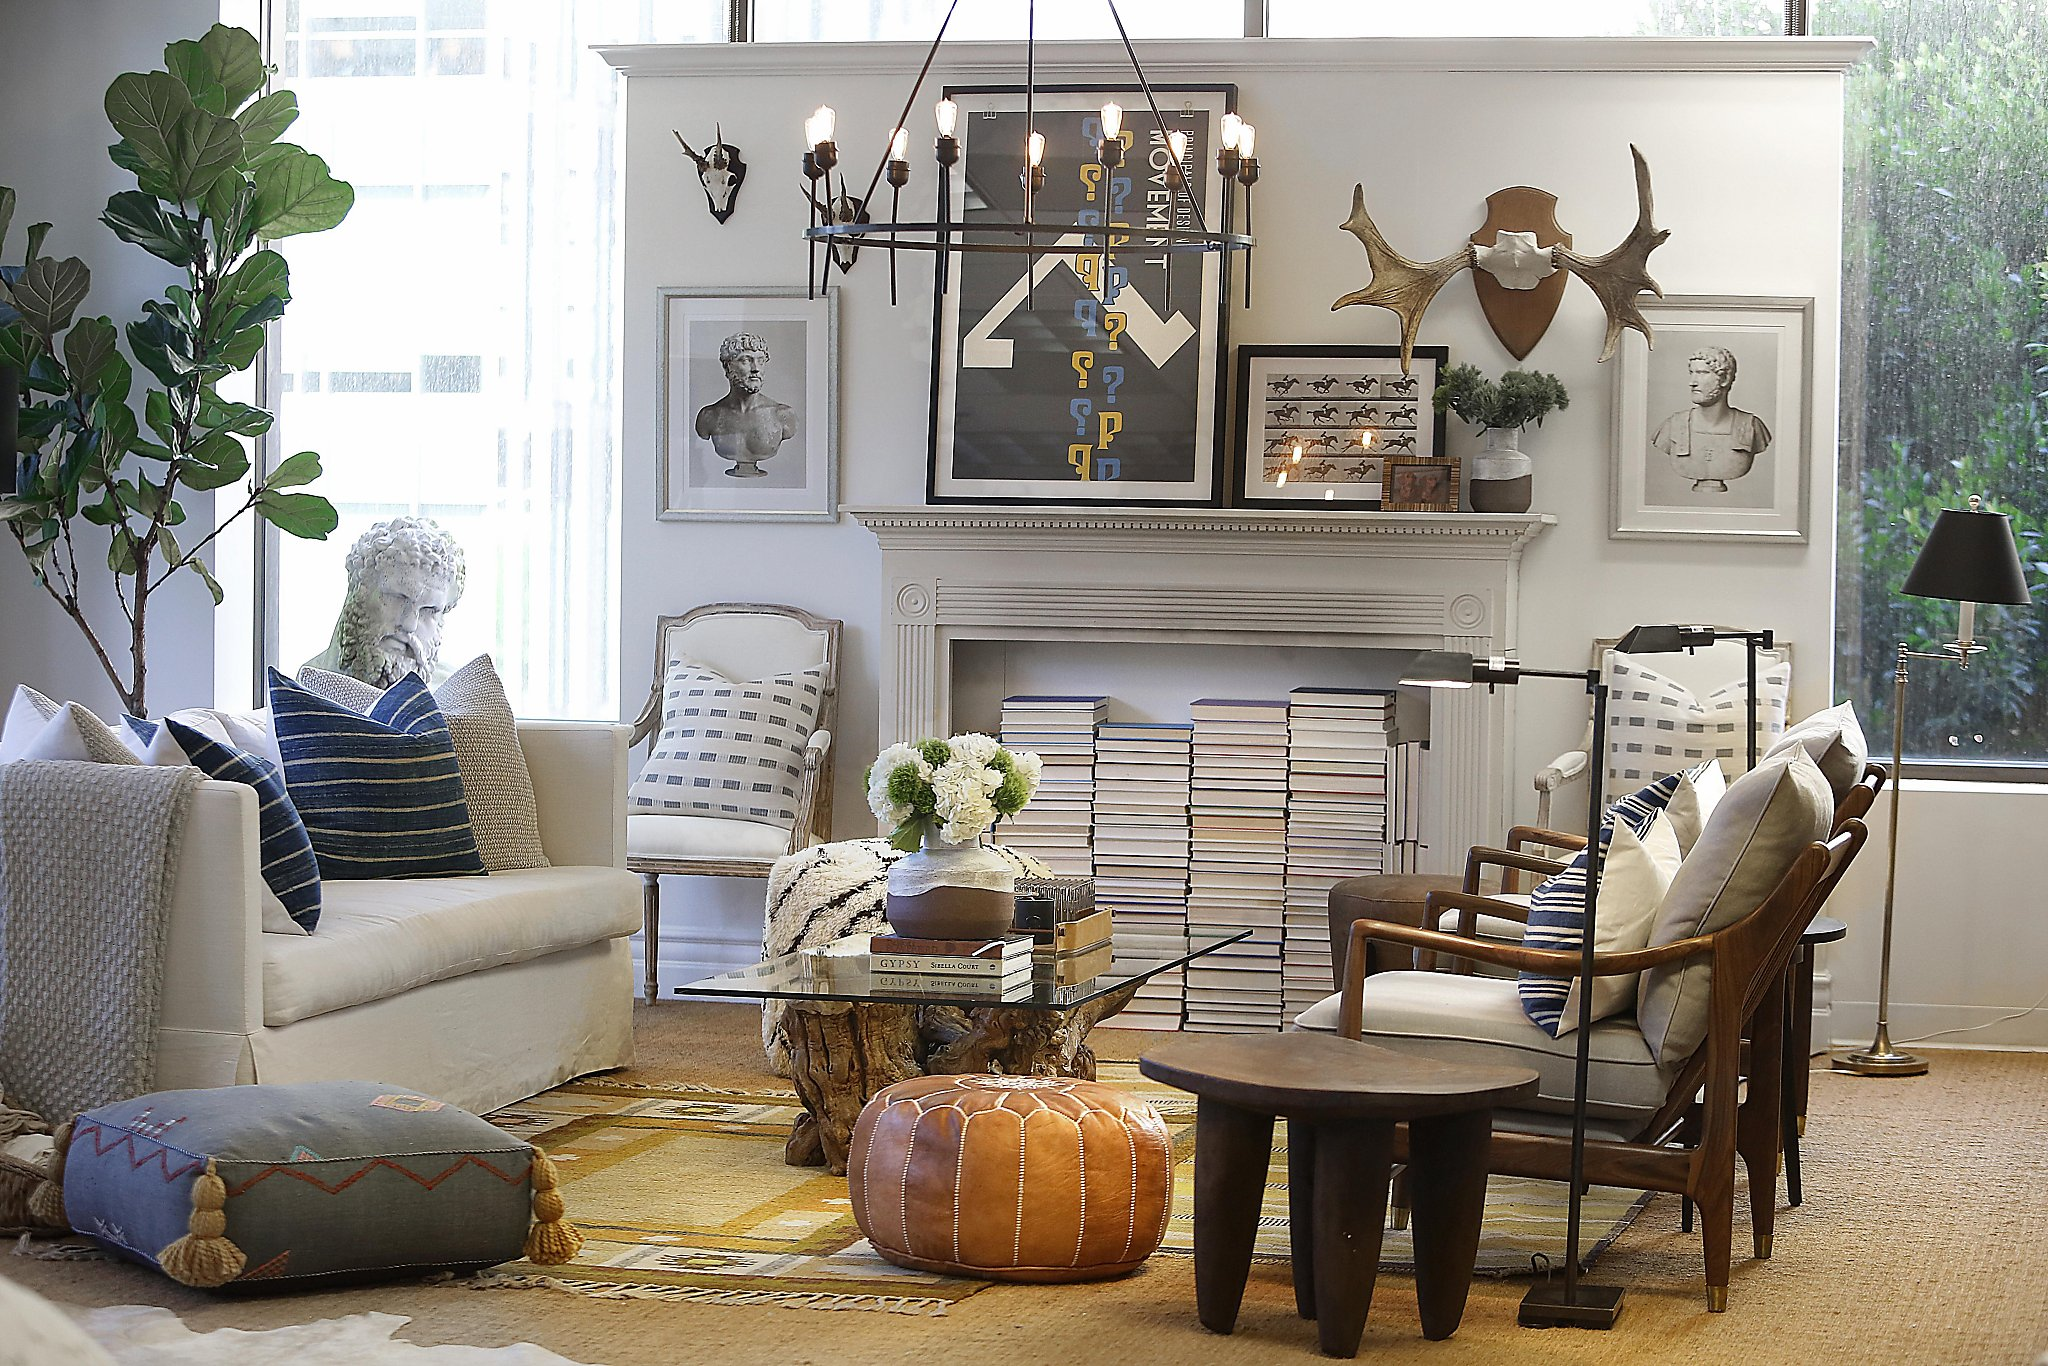 https www sfchronicle com style article one kings lane studio and showroom hit home 9237949 php